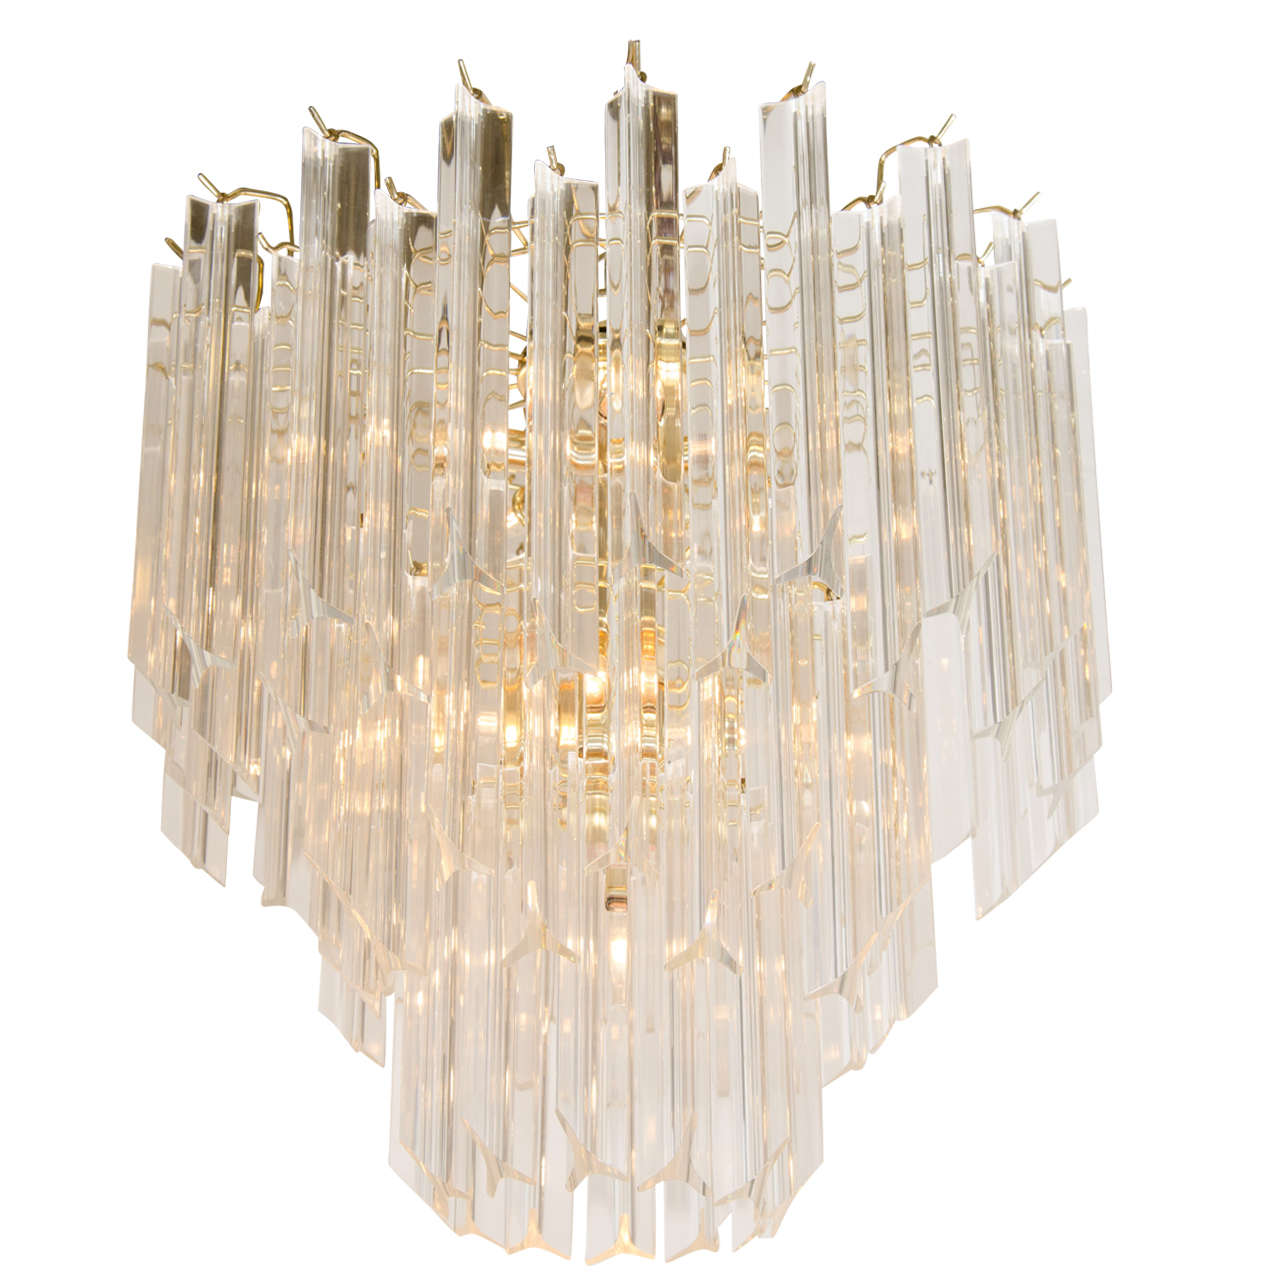 chandelier glass by lightolier excellent decaso for gaetano sciolari product and lucite rod